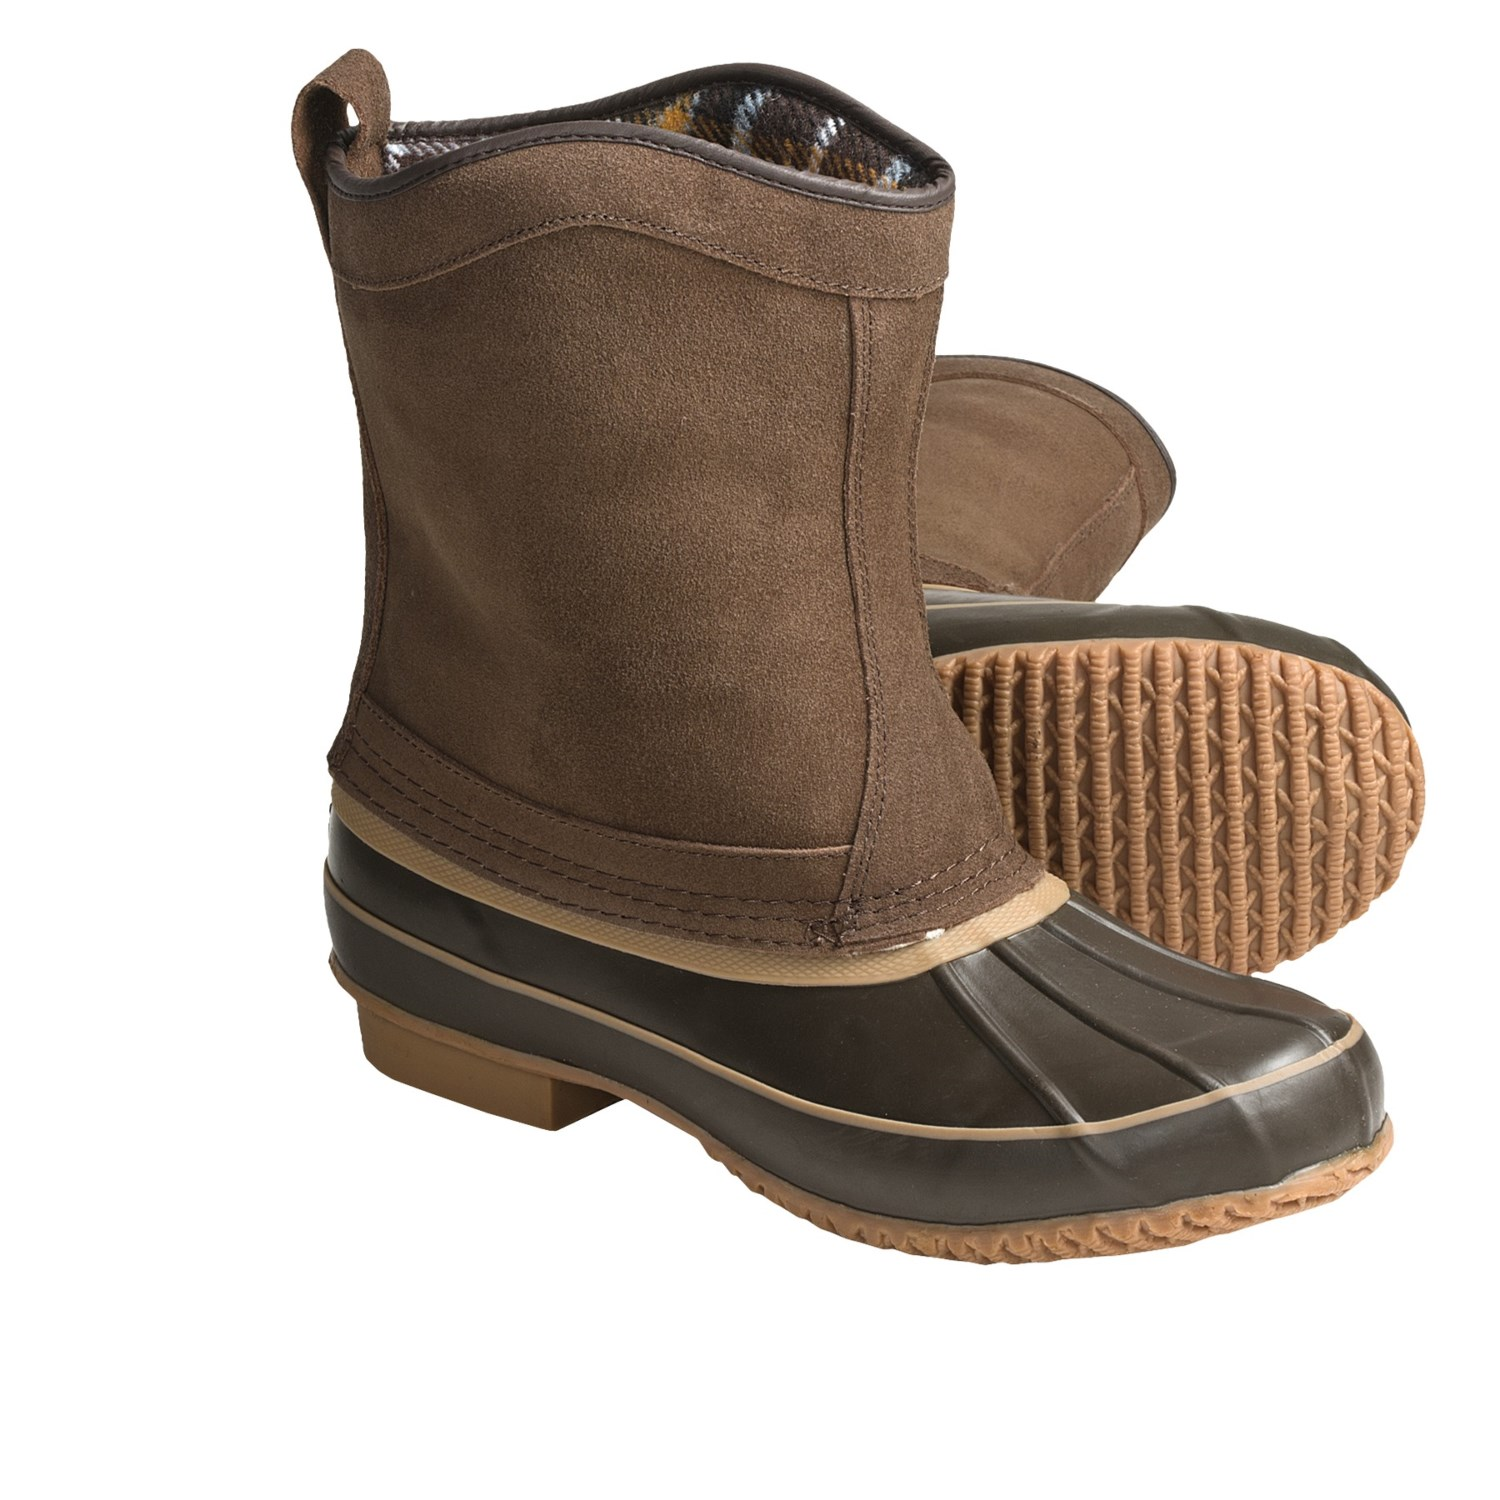 Khombu Duck Suede Winter Boots (For Men) - Save 36%